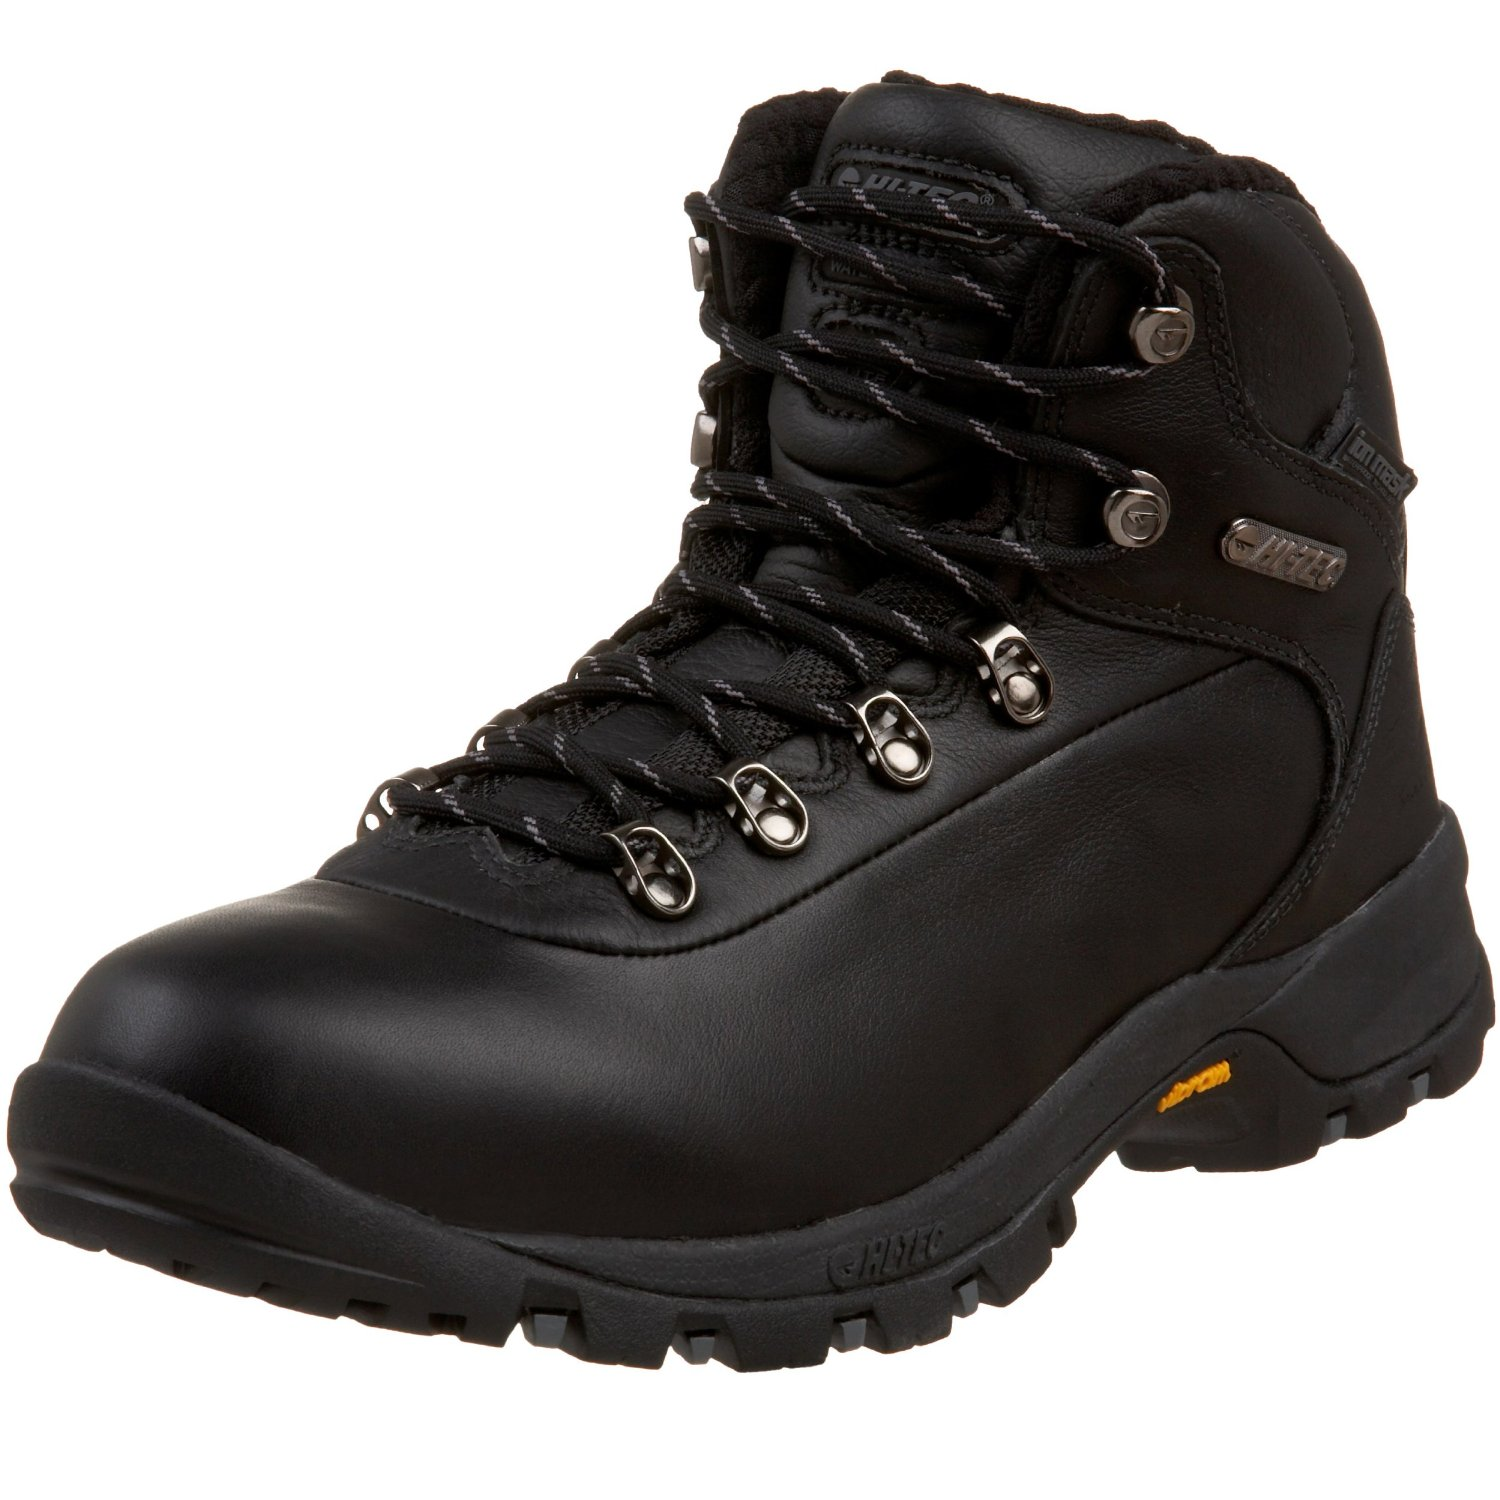 Melt product review hi tec altitude ultra light hiking work boot